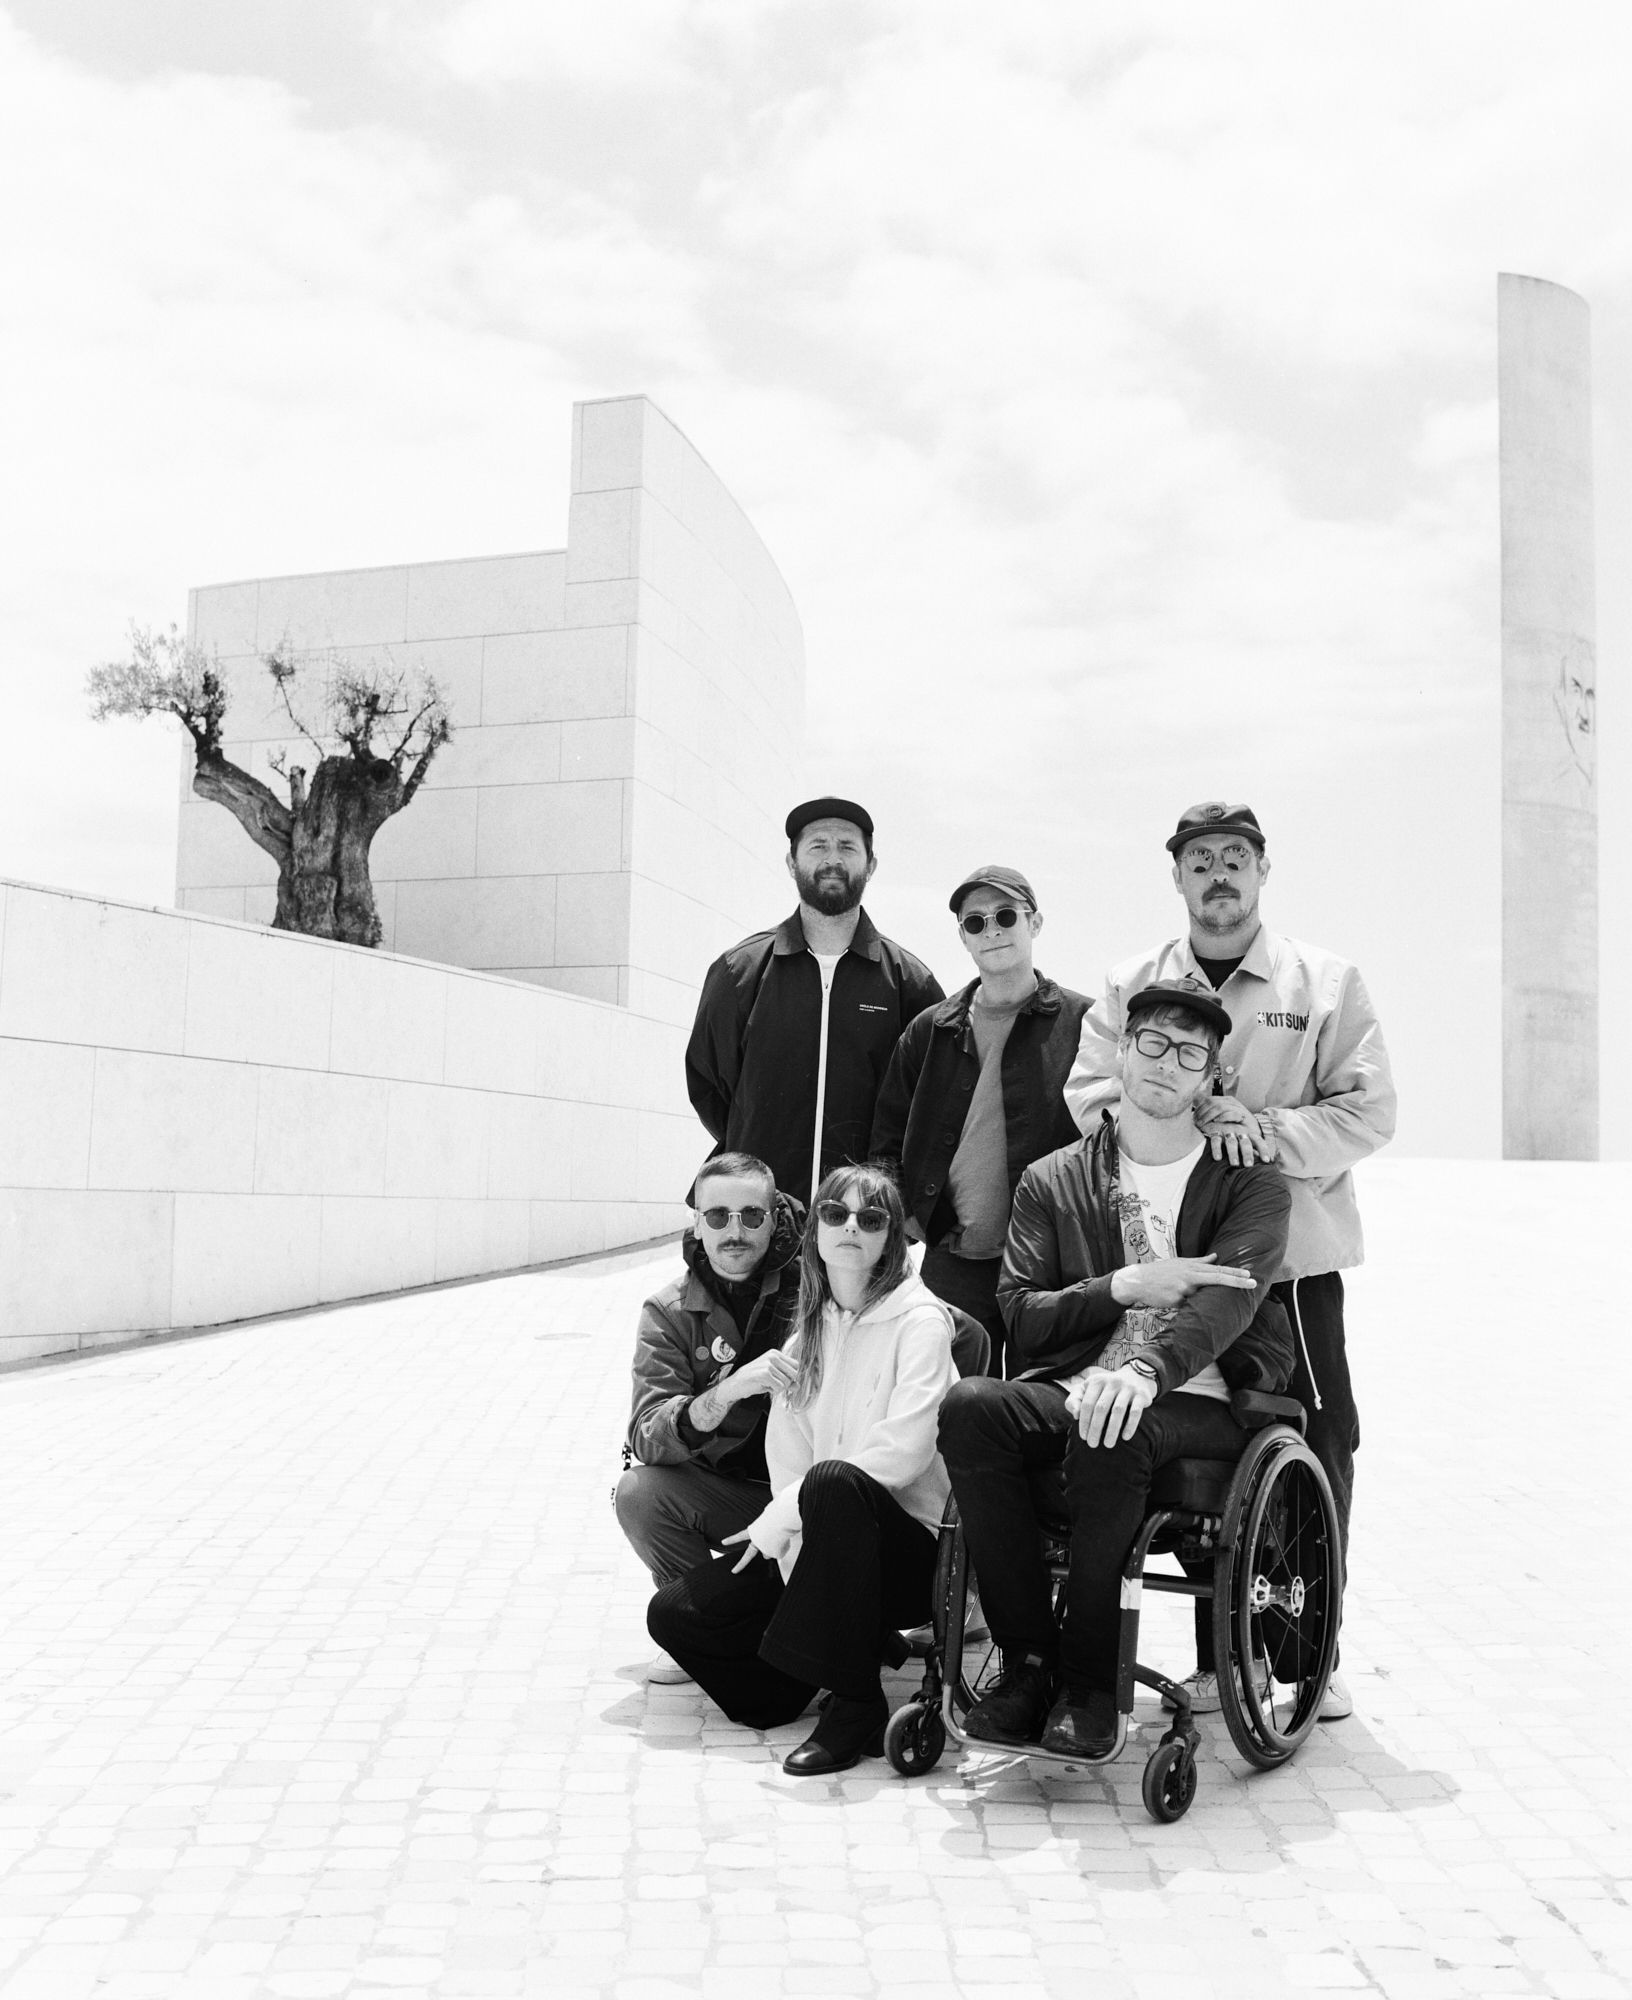 portugal the man live in the moment free download